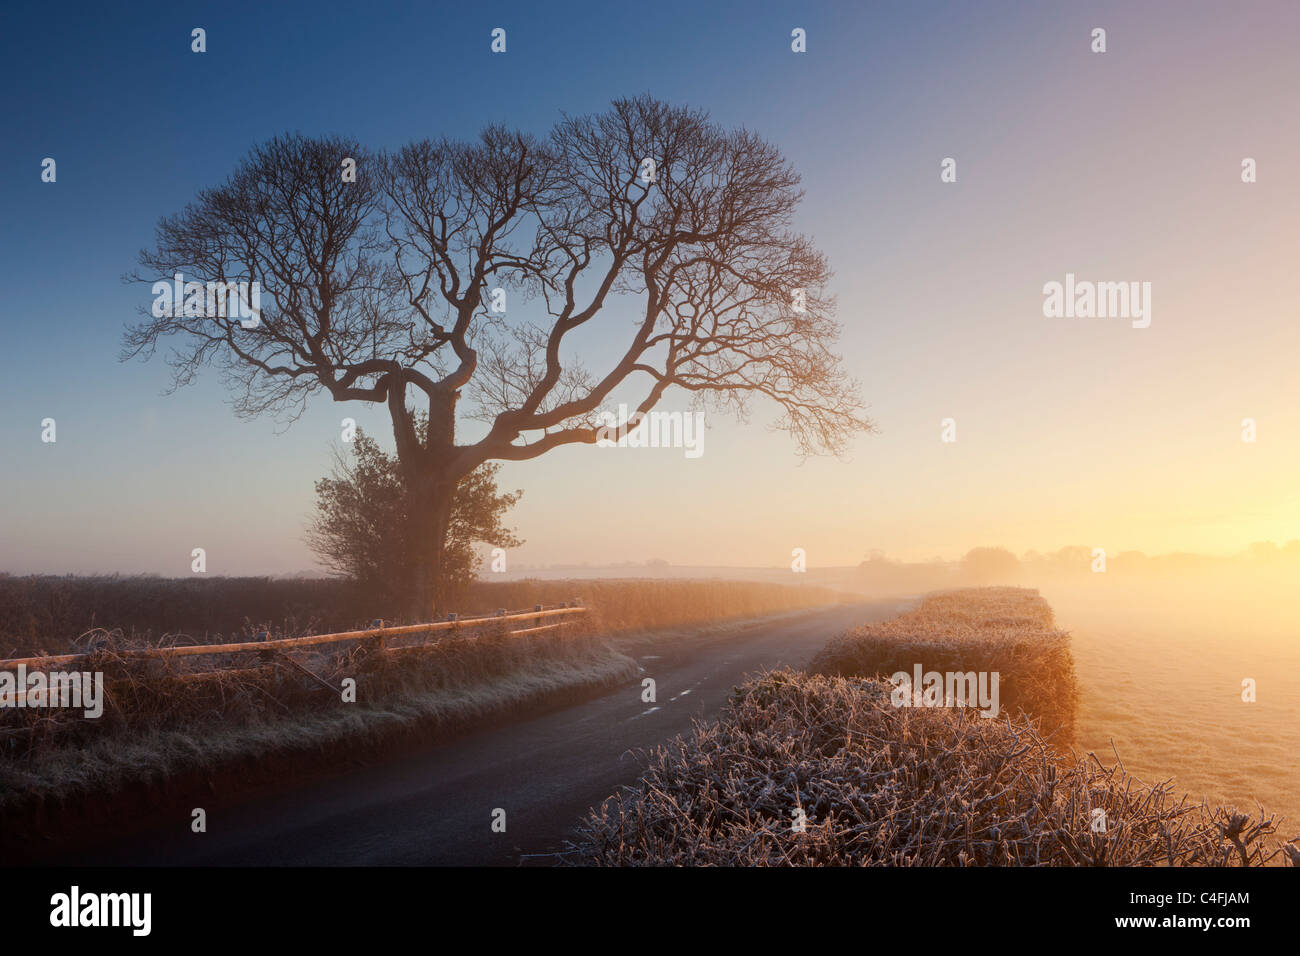 Tree and country lane on a misty morning at sunrise, Chawleigh, Devon, England. Winter (December) 2010. - Stock Image